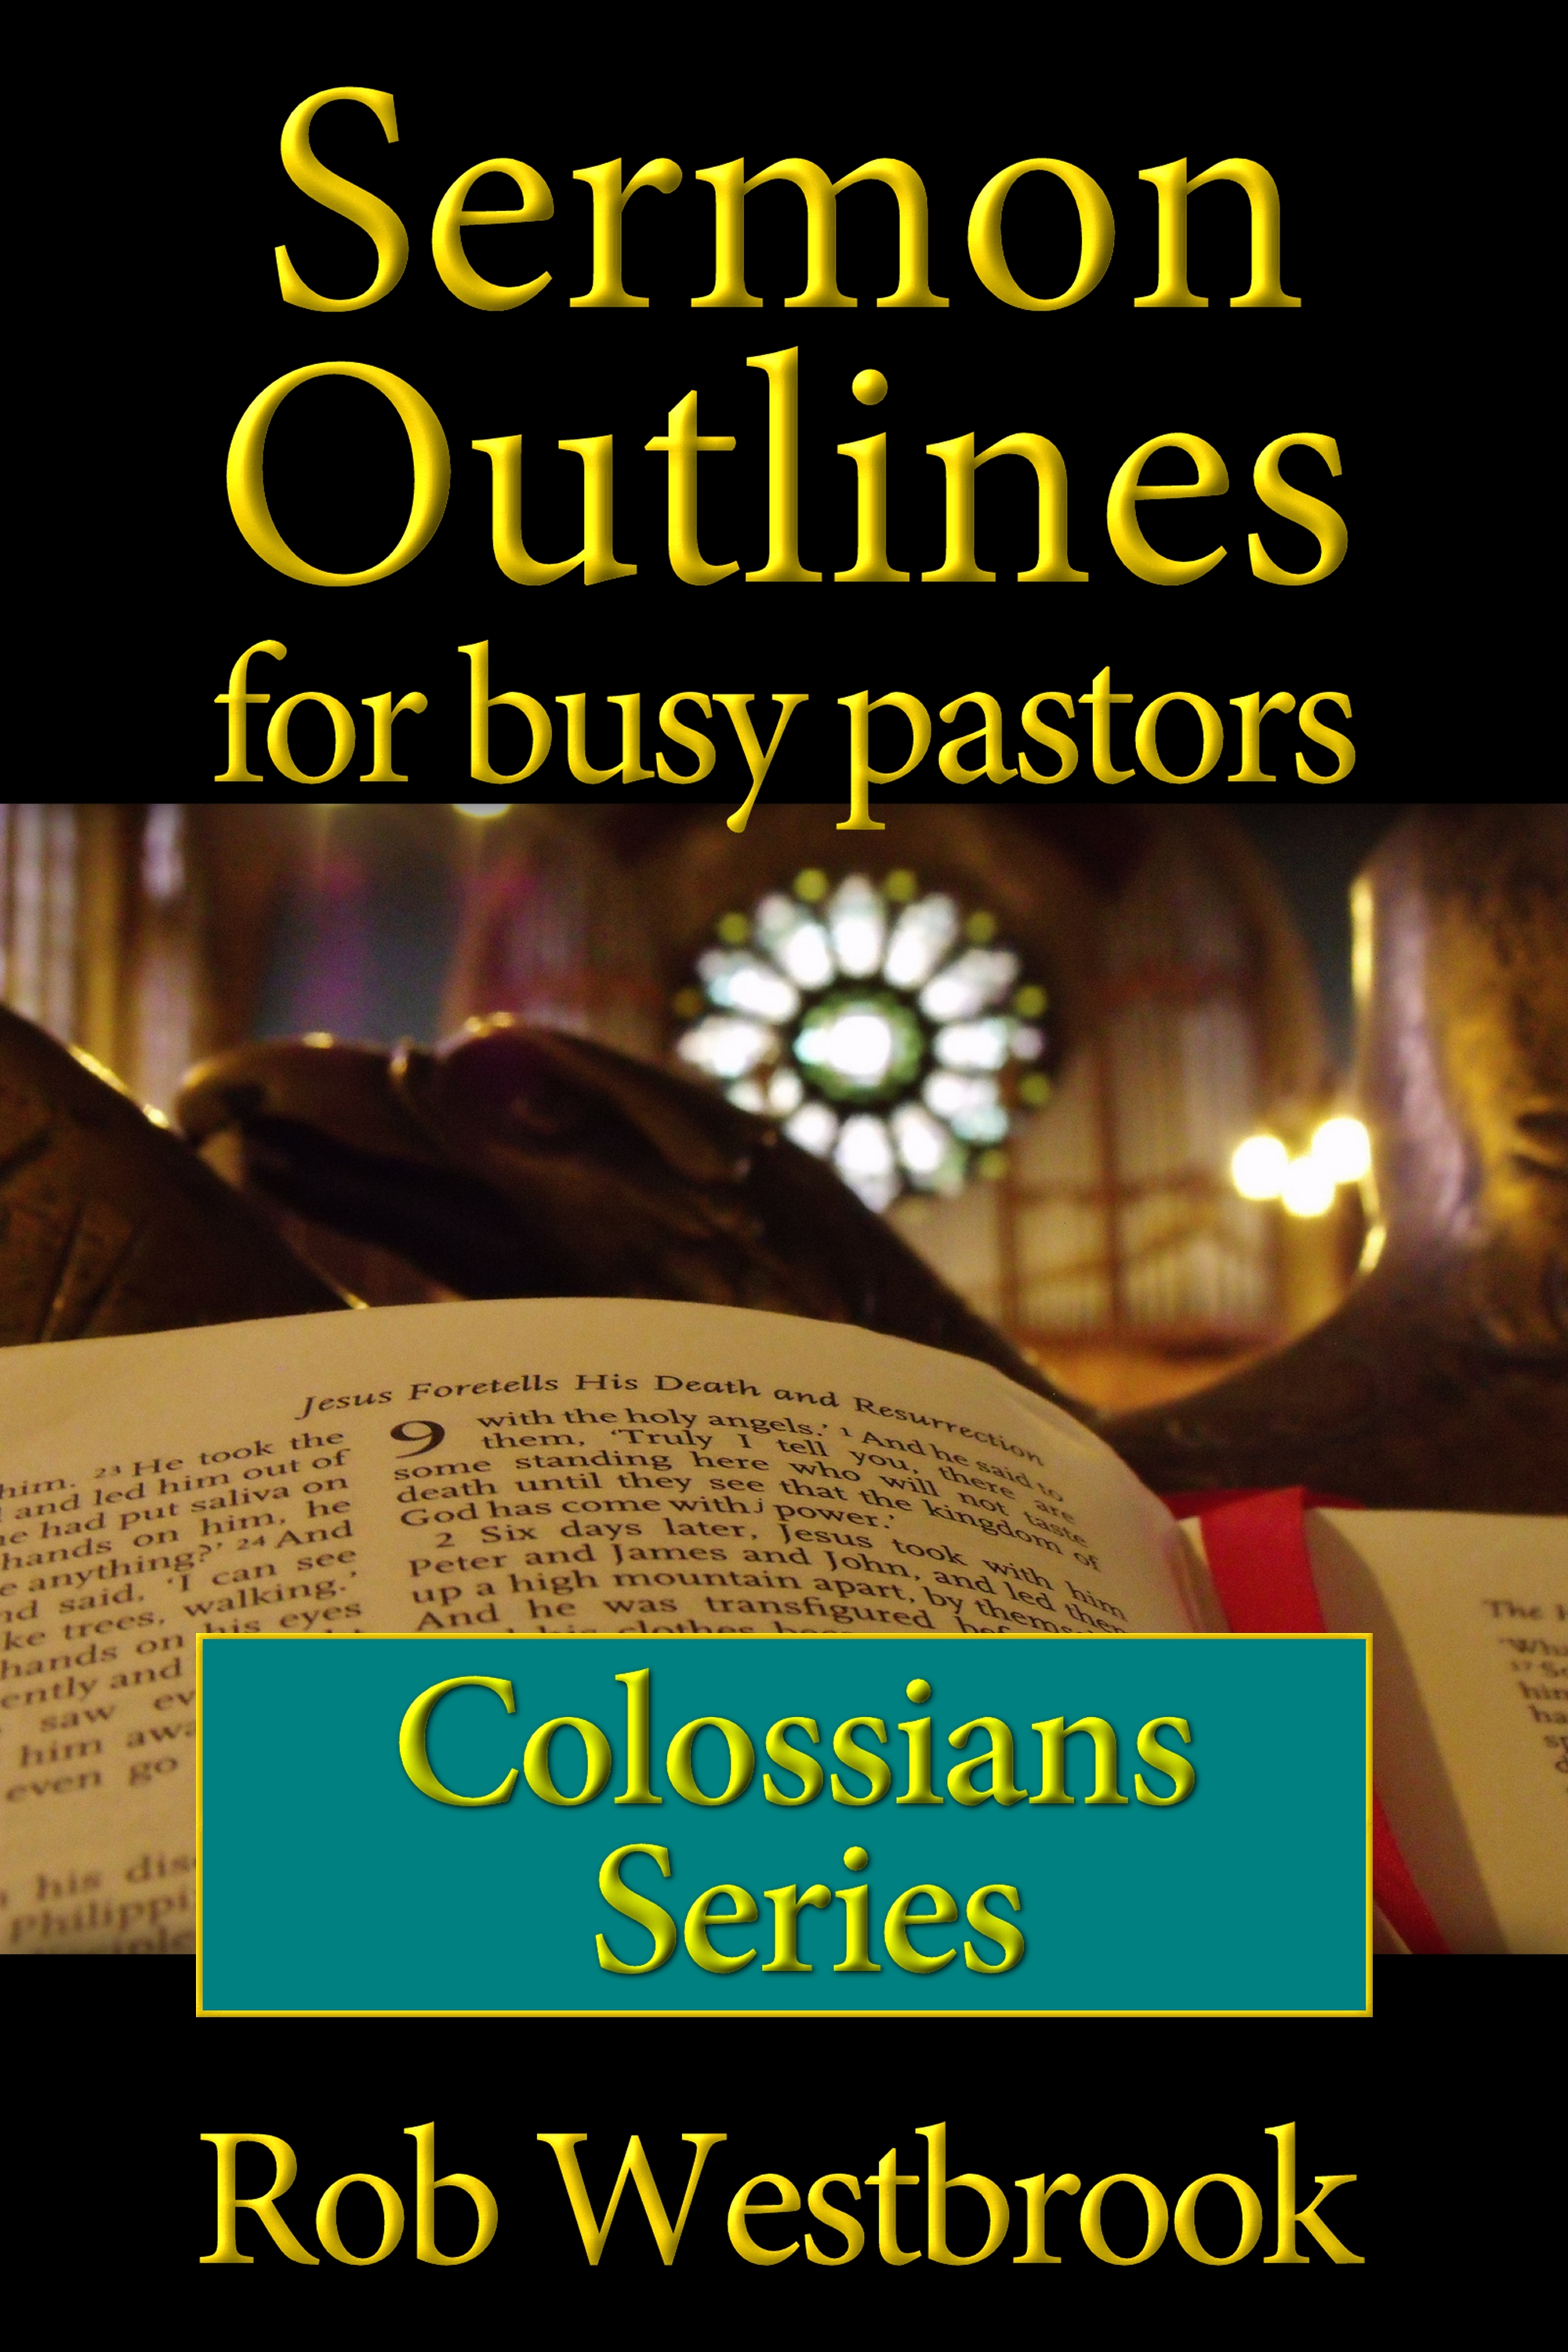 Sermon Outlines for Busy Pastors: Colossians Series, an Ebook by Rob  Westbrook